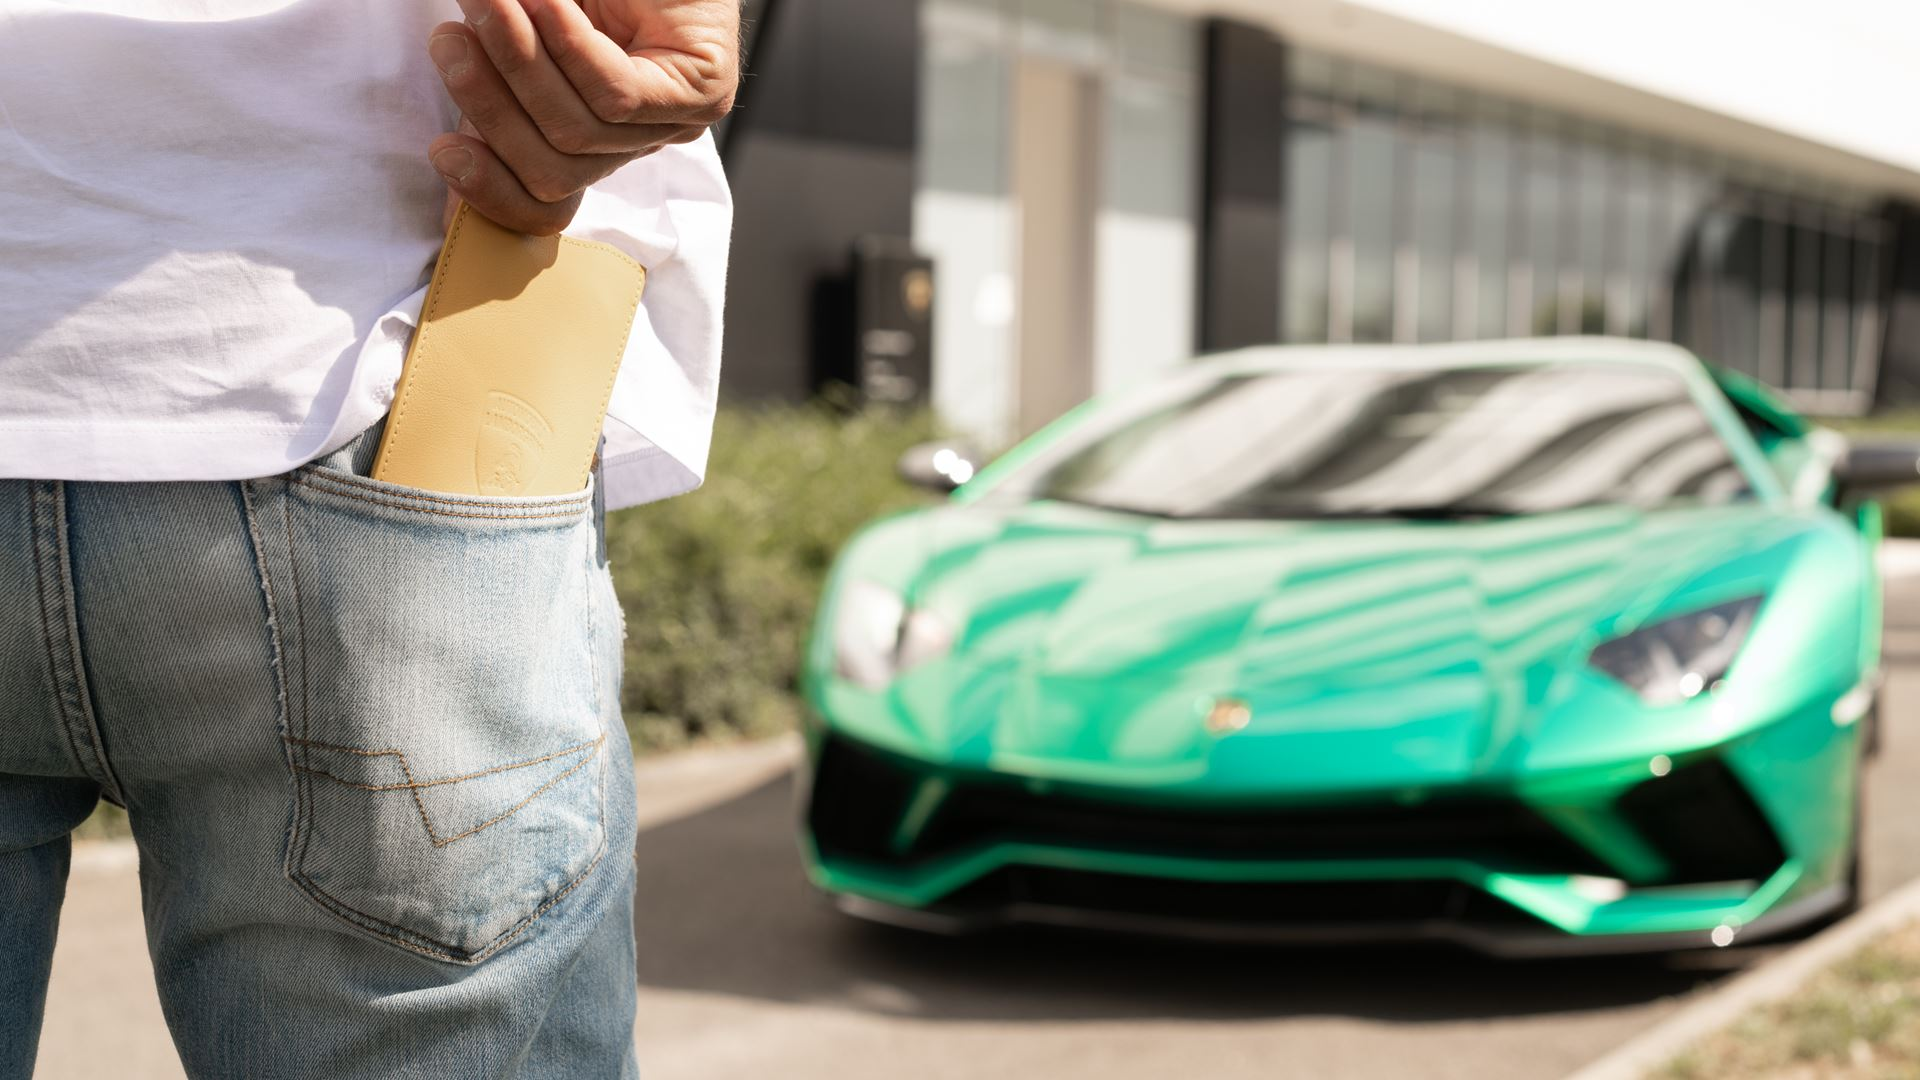 #Focu5on: five things you didn't know about Lamborghini environmental sustainability - Image 1